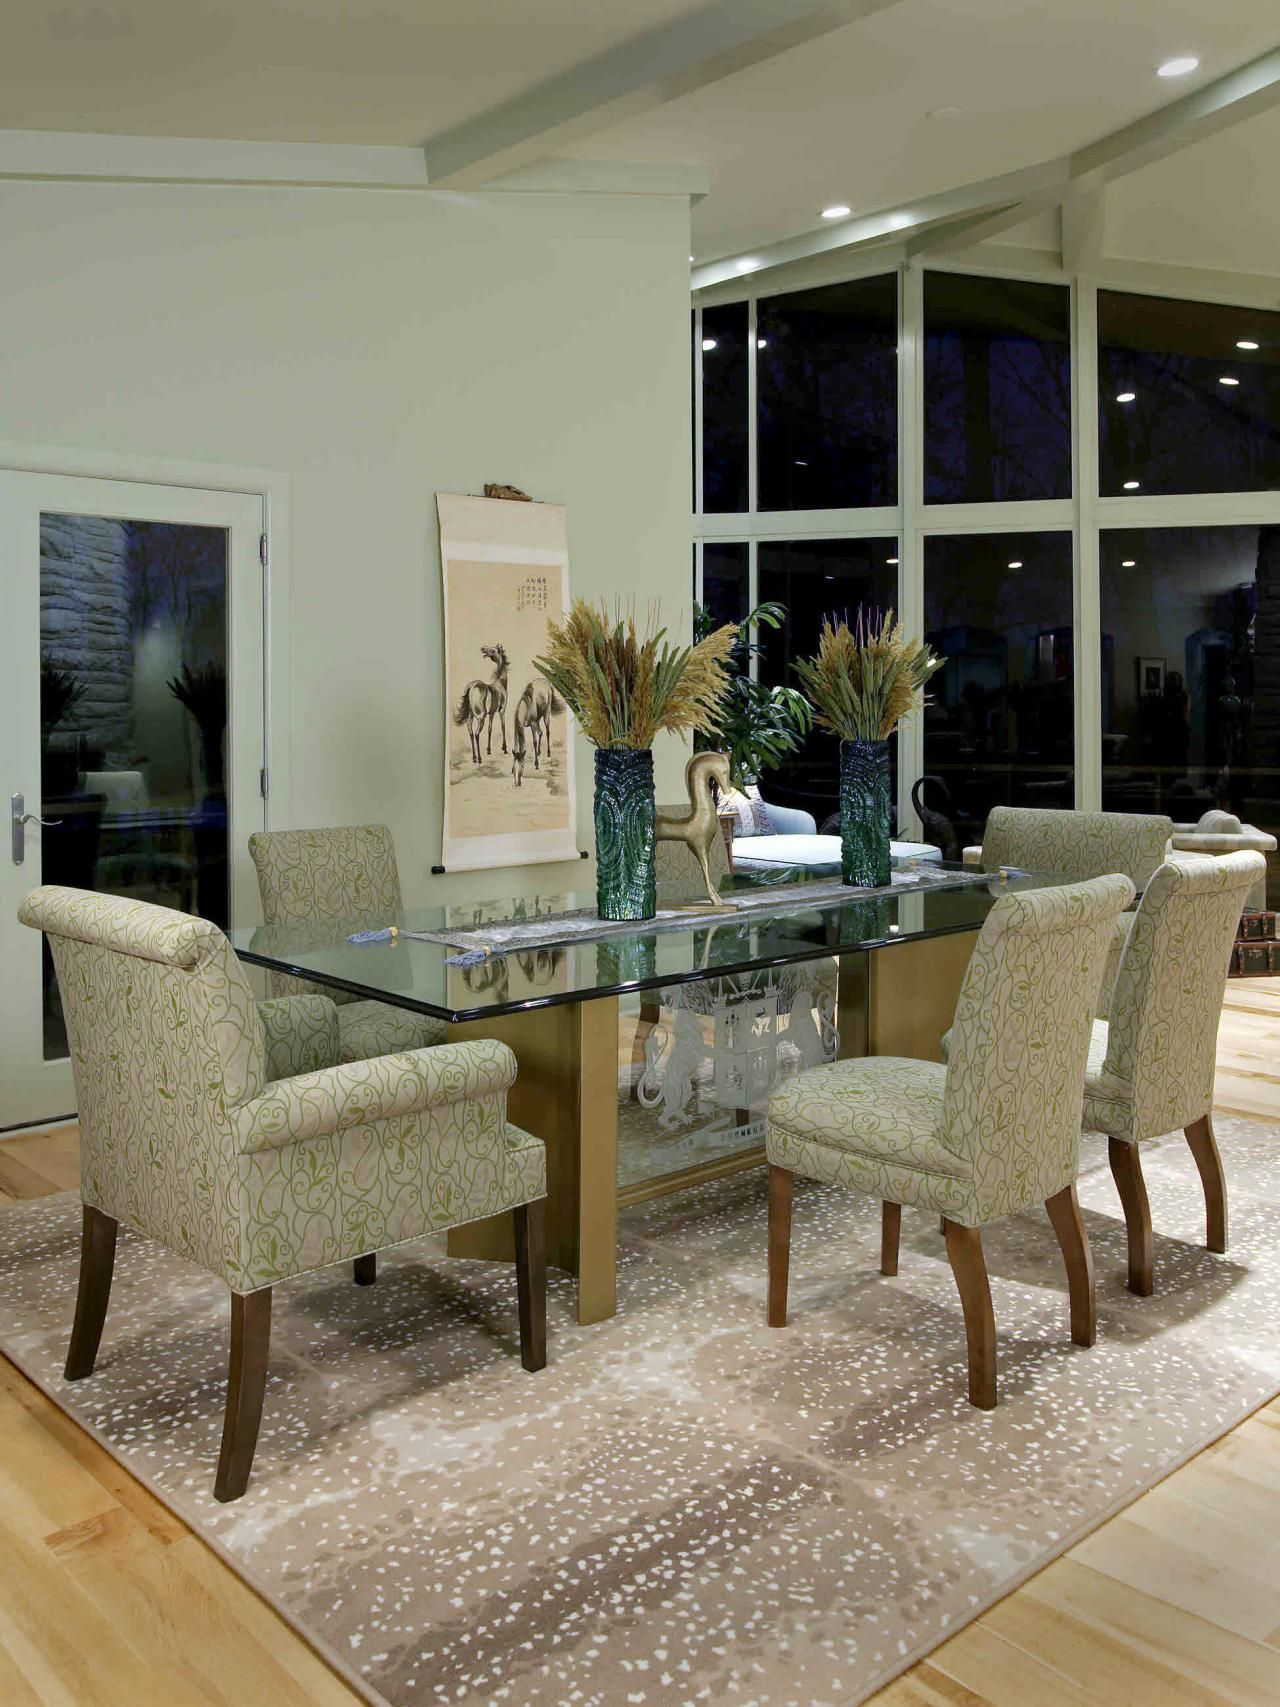 Dining Room Rug This Contemporary Features A Glass Table With Family Crest Base Slipper Chairs And Arm In The Same Upholstery Create